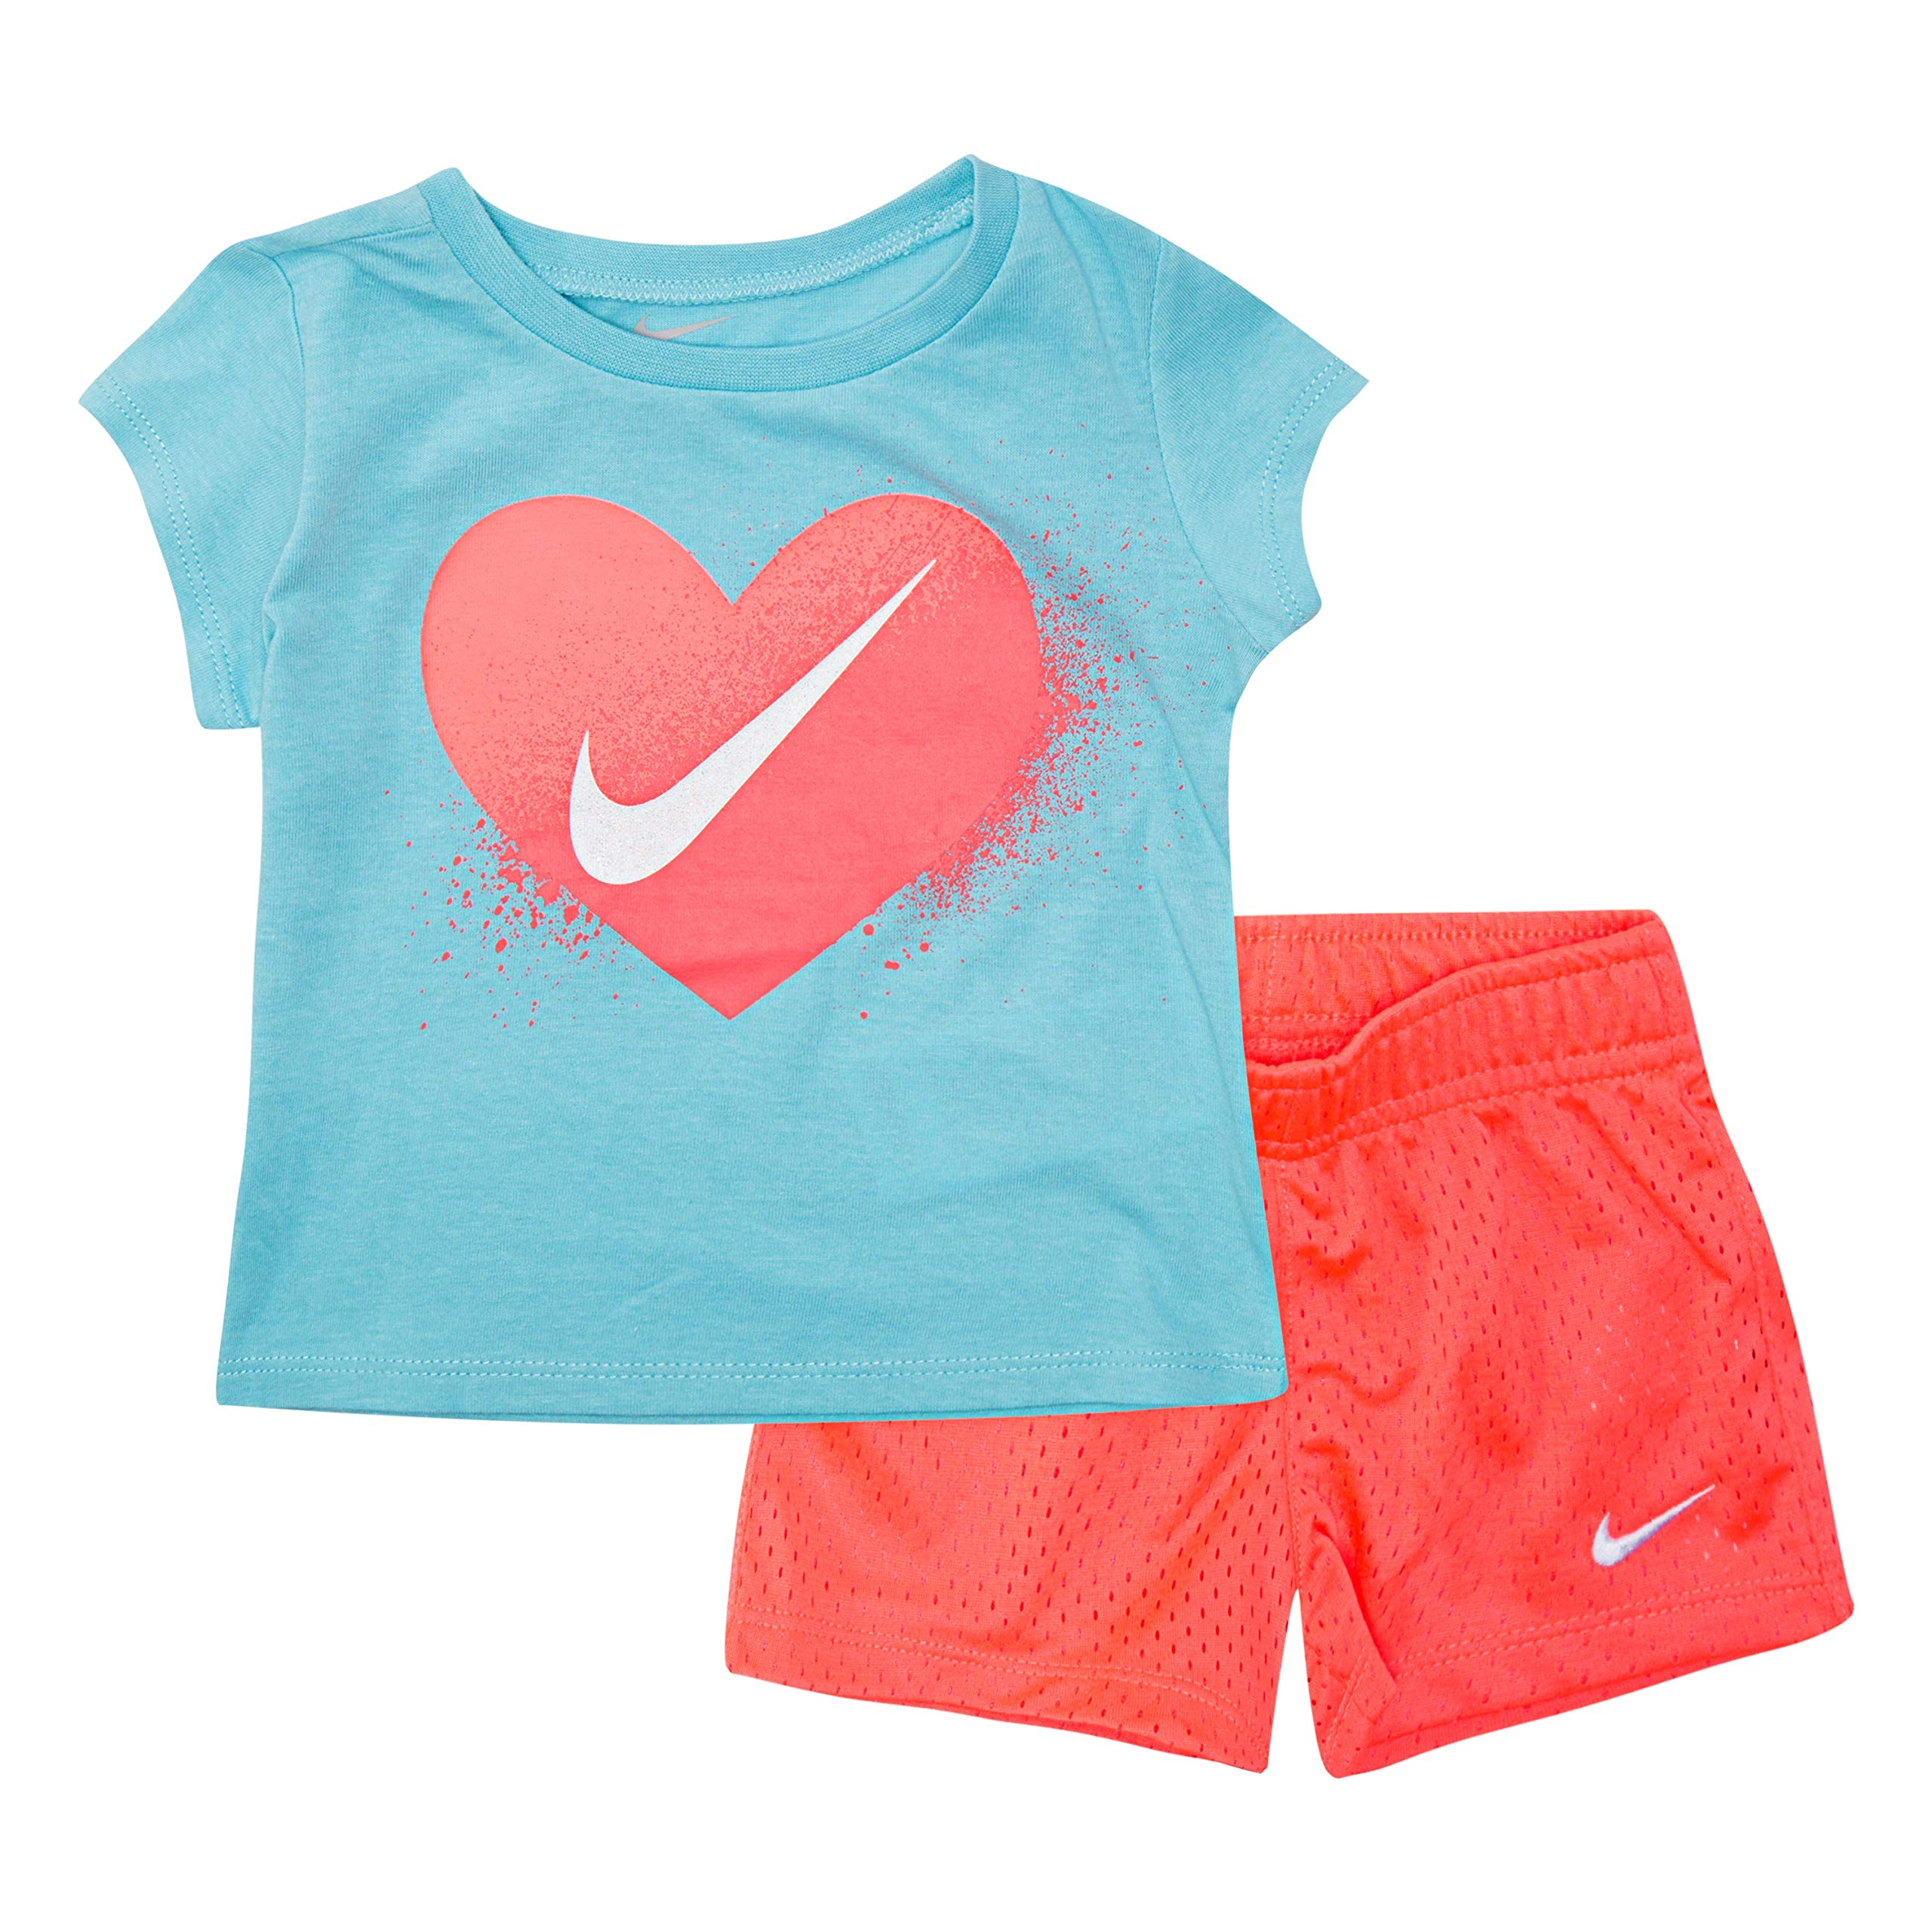 NIKE Children's Apparel Girls' Toddler Graphic T-Shirt and Shorts 2-Piece Outfit Set, Hot Punch/Bleached Aqua, 4T